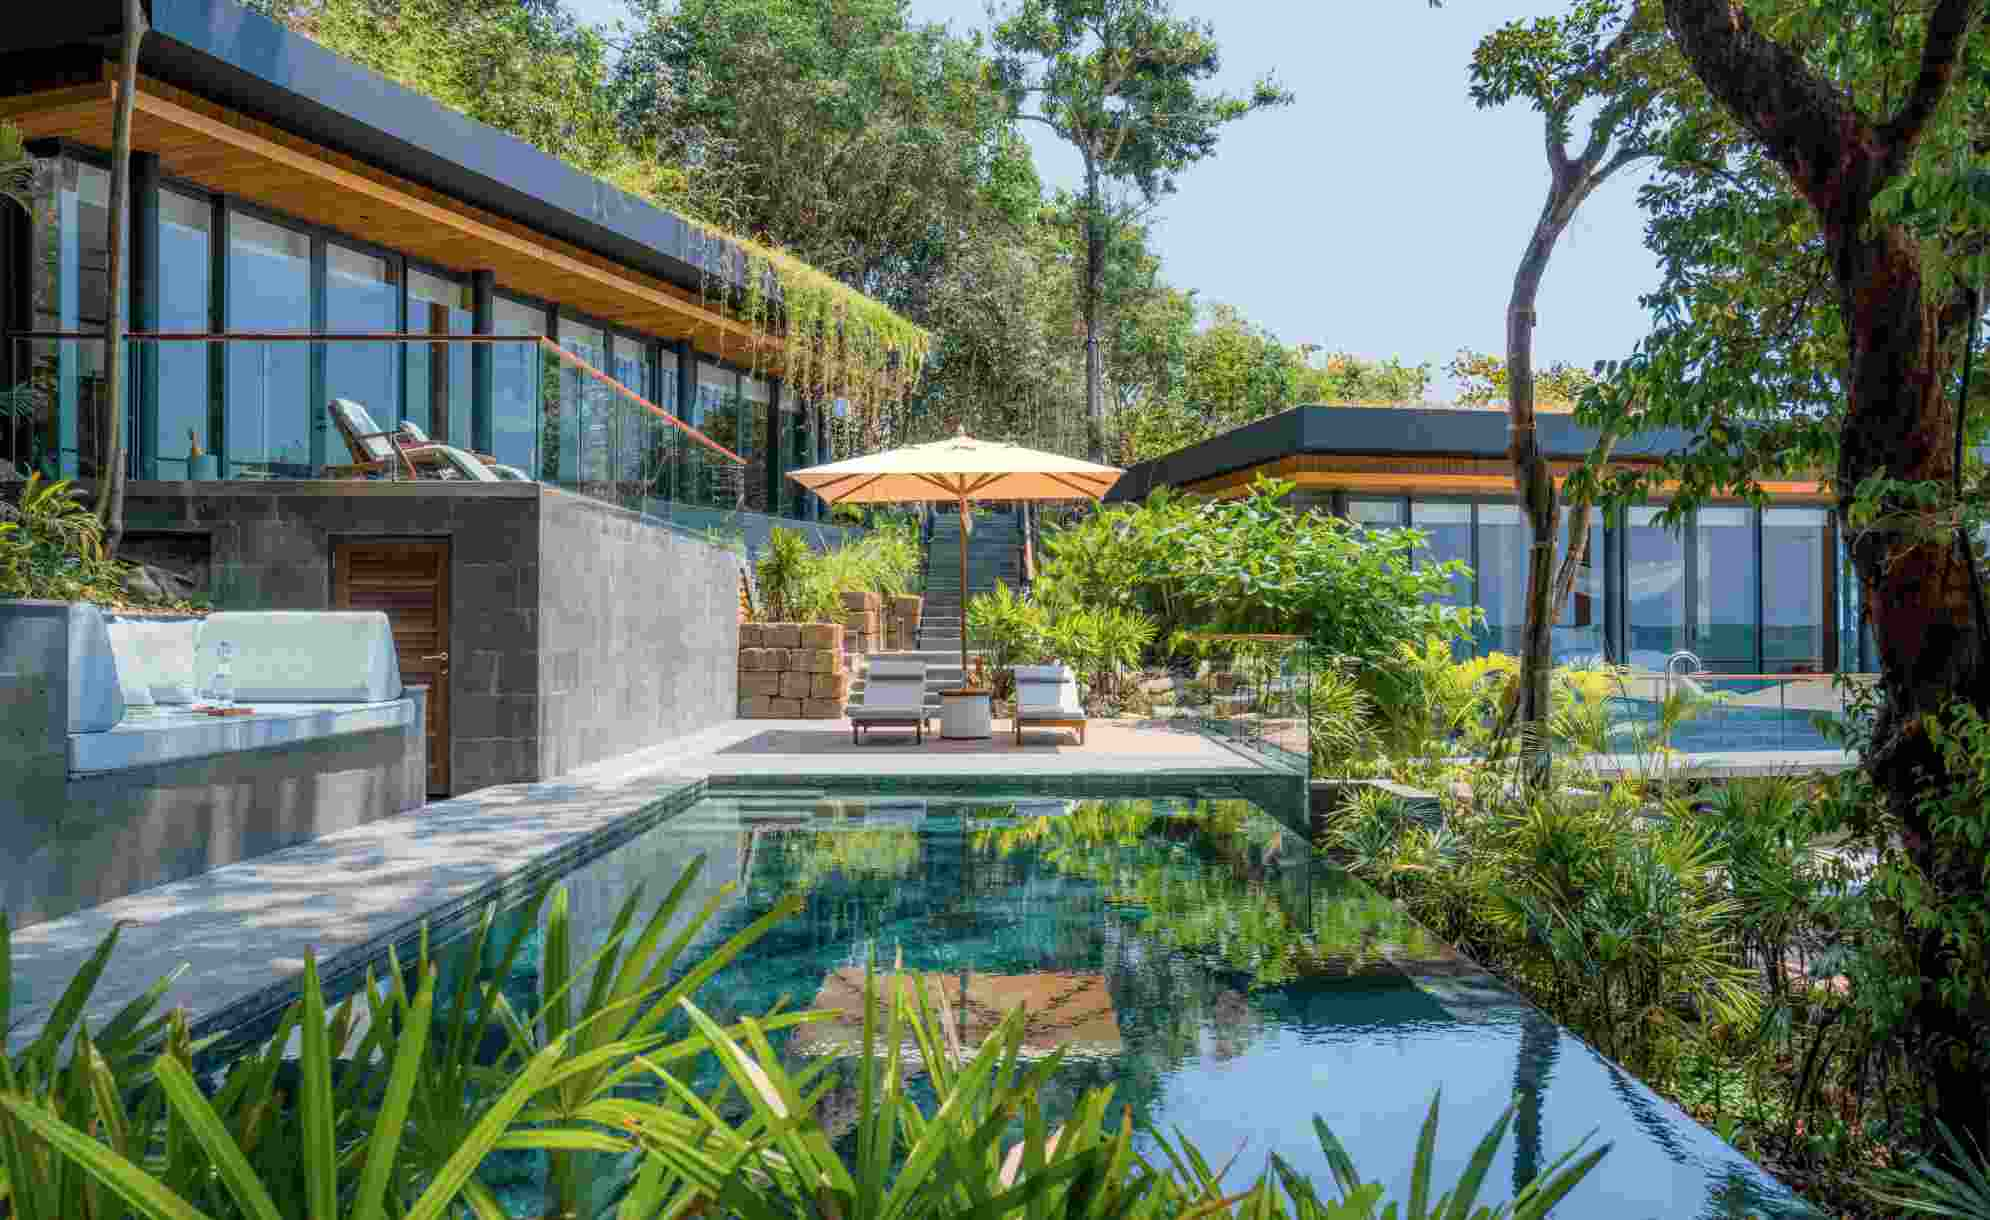 Six Senses Krabey Island, a topical island hideaway